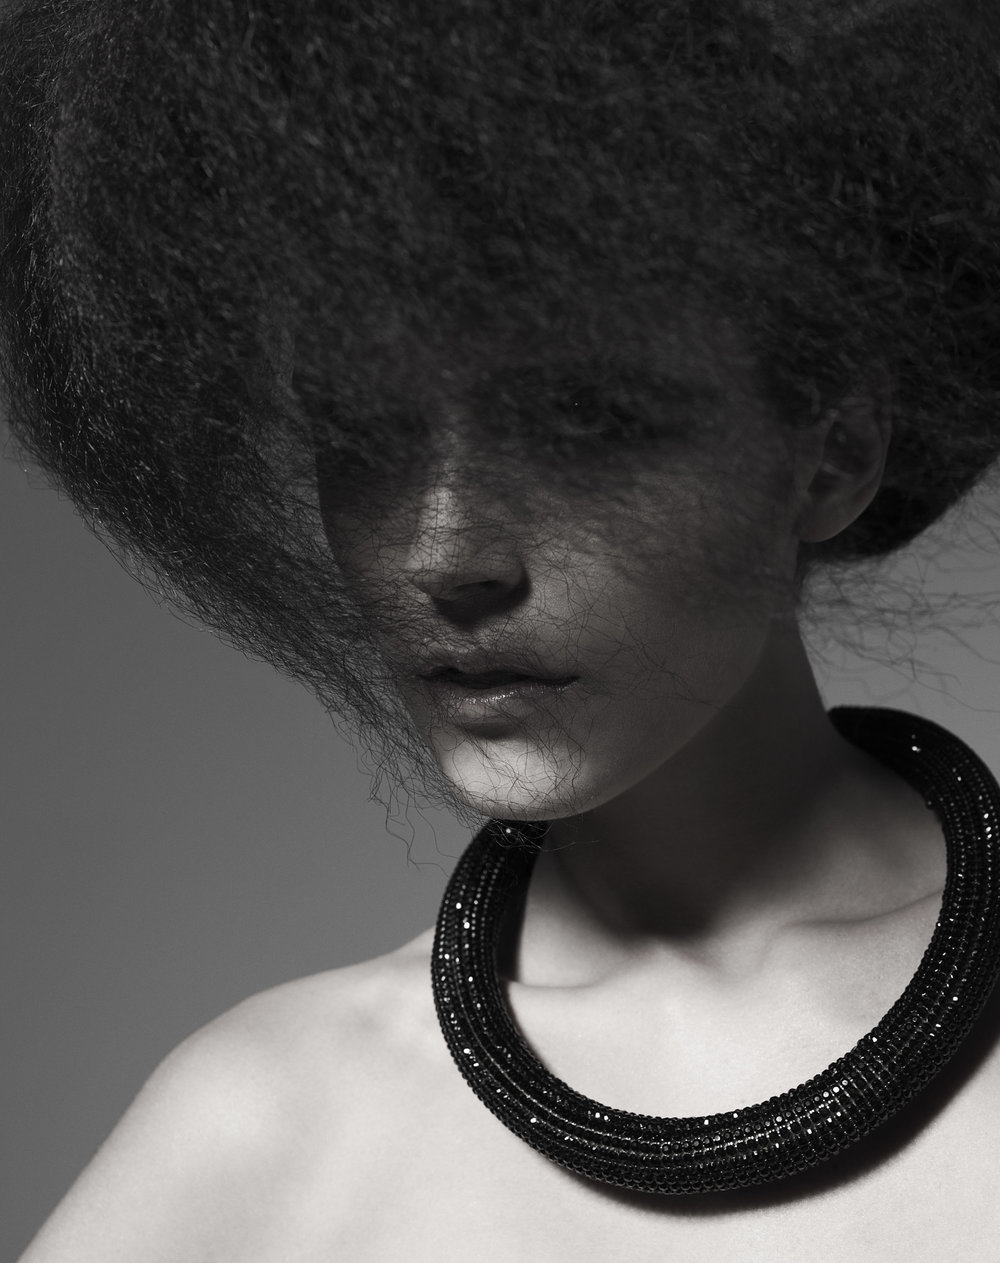 101123_JOICO_STYLING 53897 copy.jpg